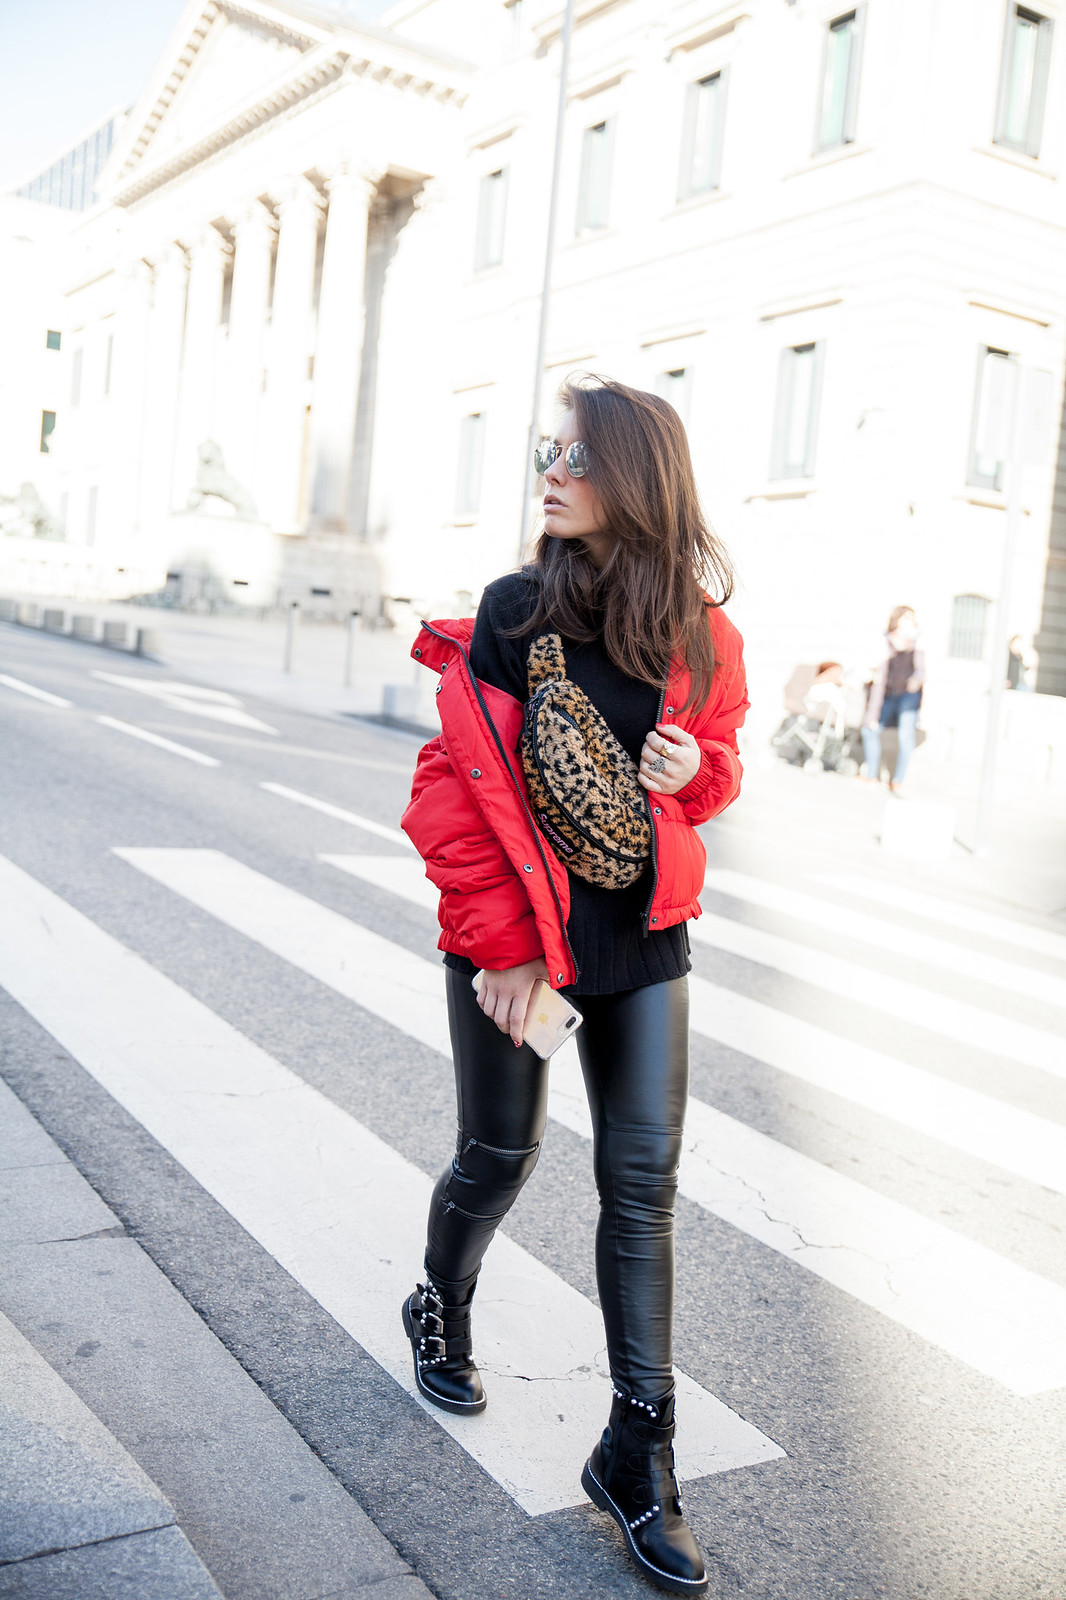 laura santolaria theguestgirl influencer madrid red coat Supreme bag tendencia riñonera de Superme NY